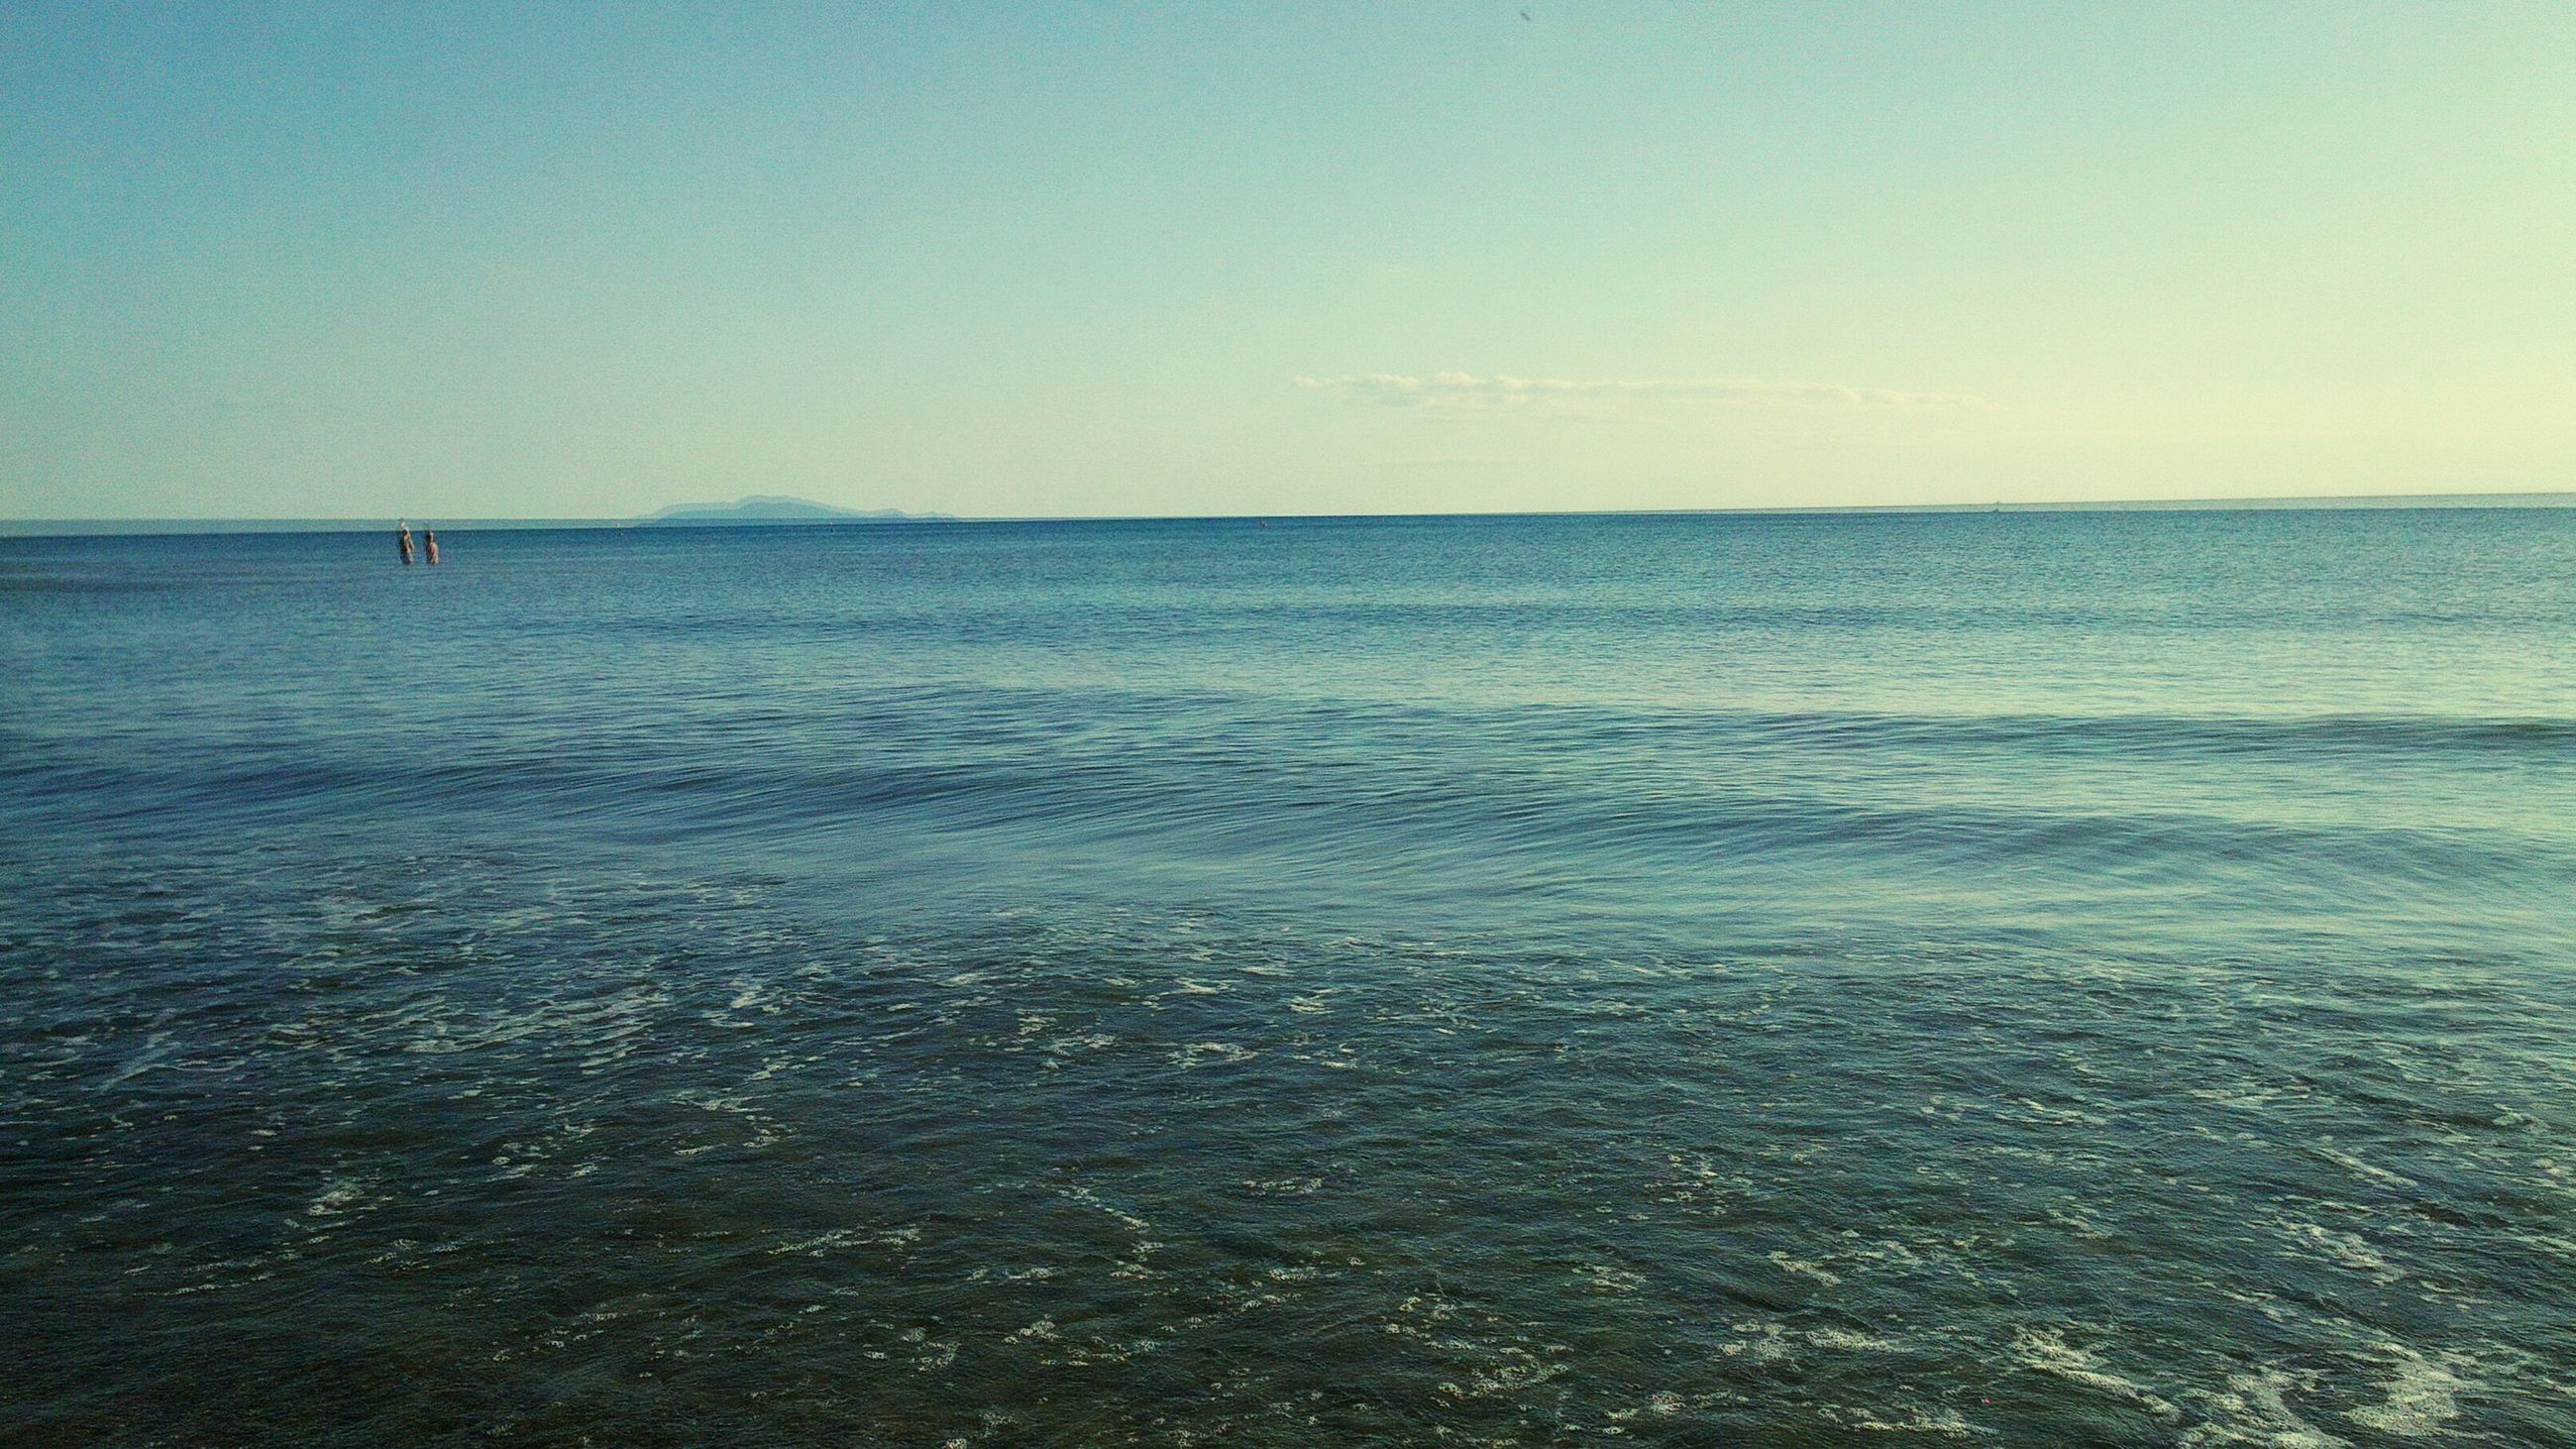 sea, water, horizon over water, tranquil scene, clear sky, scenics, tranquility, copy space, beauty in nature, nature, blue, seascape, idyllic, rippled, beach, waterfront, sky, shore, wave, calm